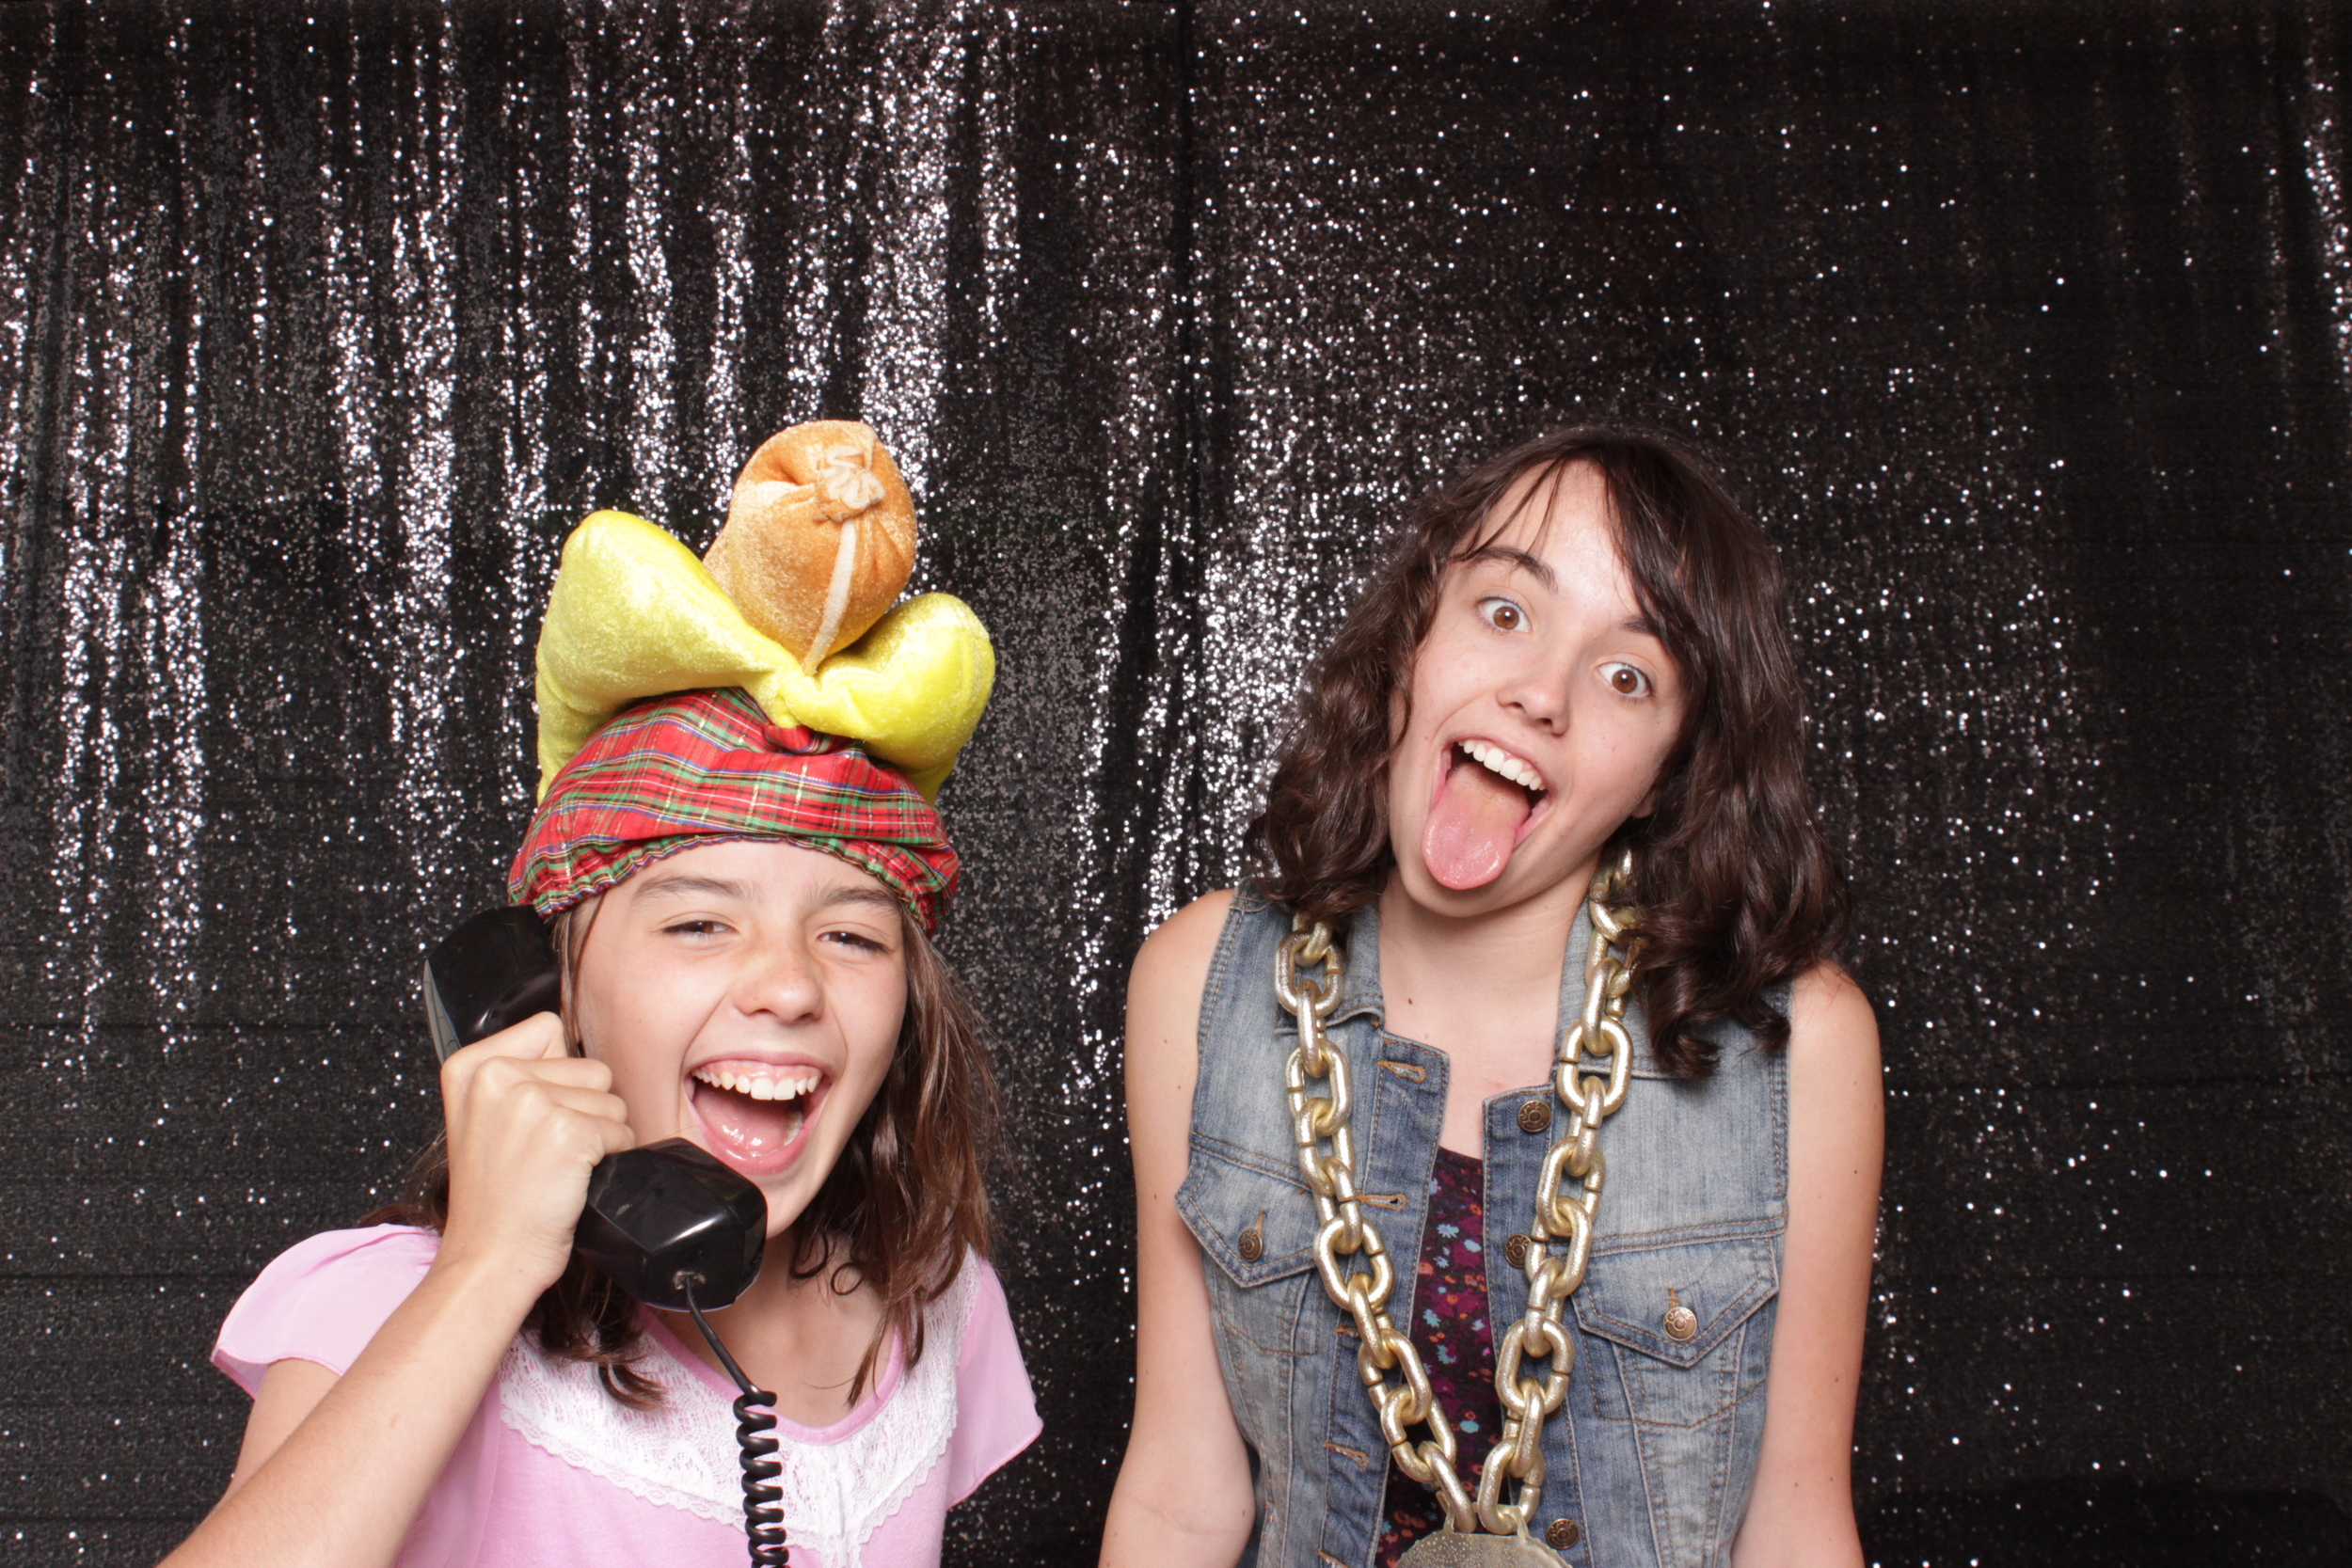 wedding-chico-open-air-photo-booth-awesome-kids